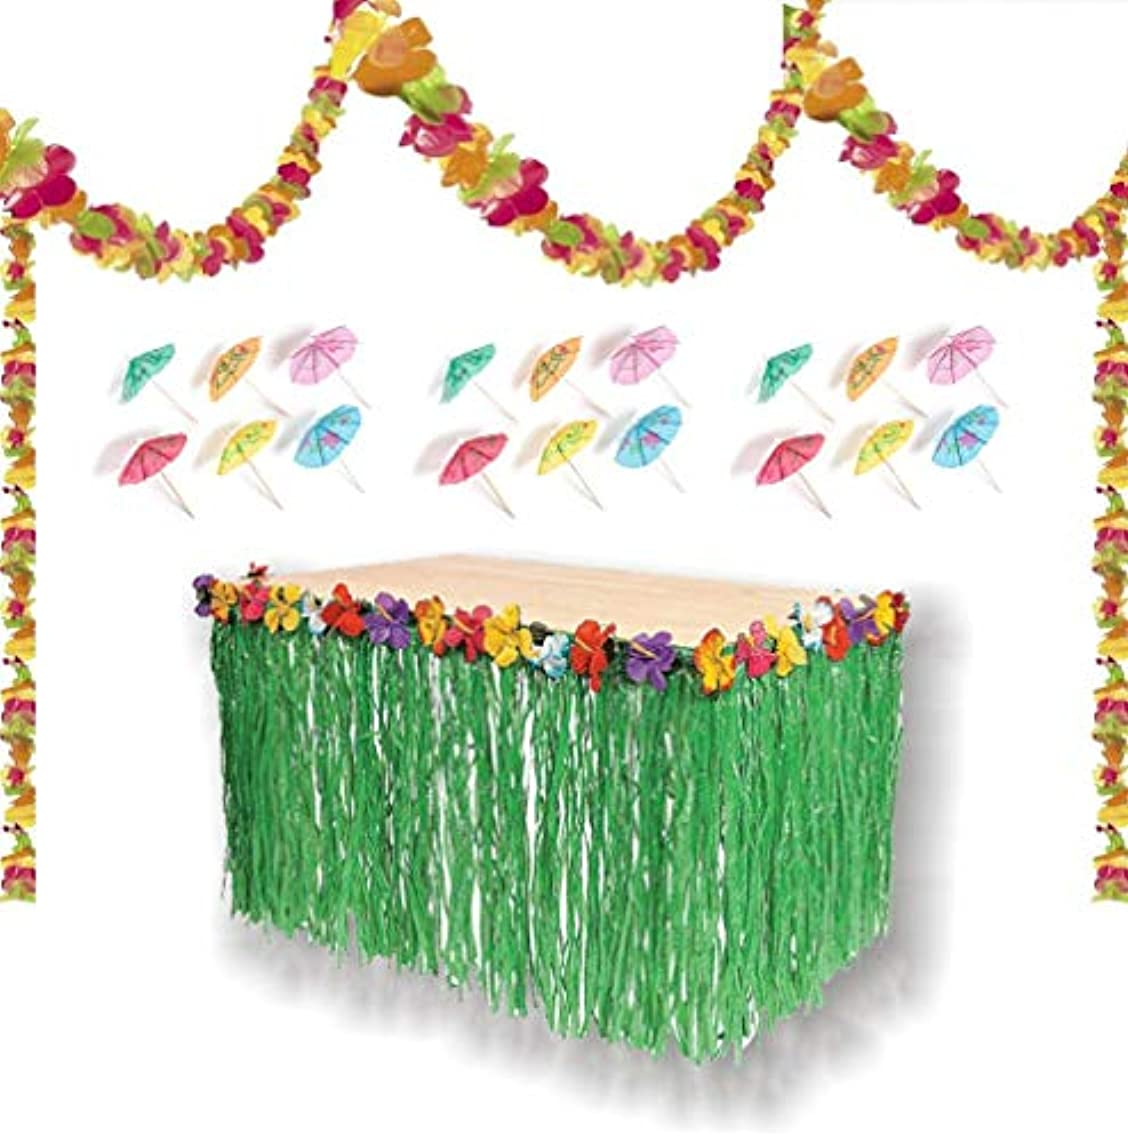 PMLAND Luau Party Decoration Set - Lei Garland(100 ft), Grass Table Skirt, 144 Paper Cocktail Umbrellas